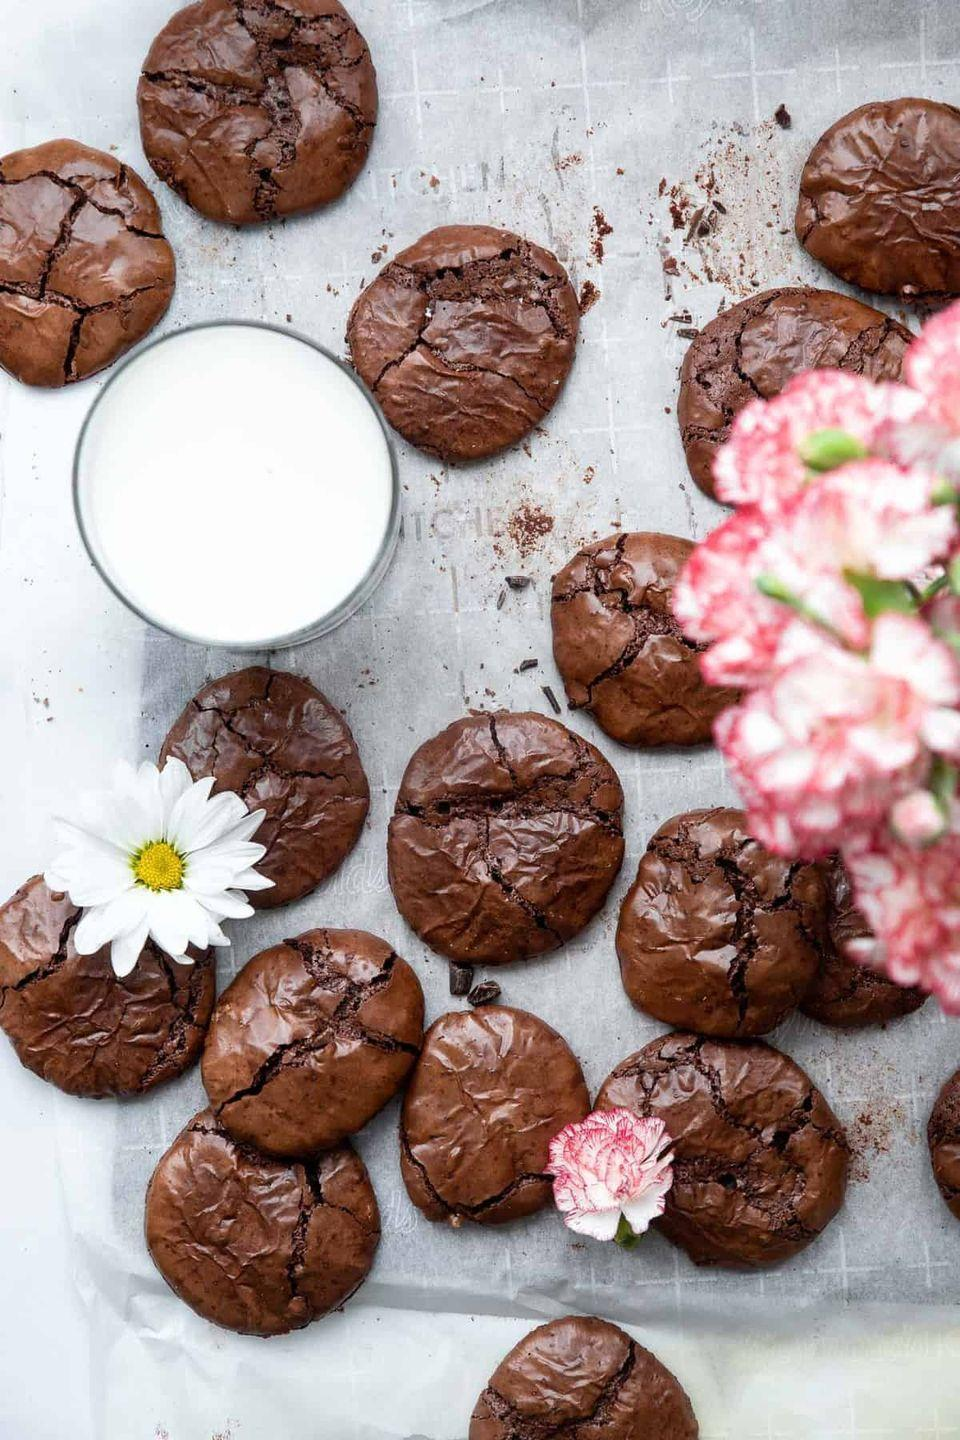 """<p>These are everything you love about chewy, chocolatey brownies—in cookie form! Best of all, they're made without any flour so they're gluten-free. </p><p><strong>Get the recipe at <a href=""""https://www.foodfaithfitness.com/flourless-gluten-free-chocolate-cookies/?web=1&wdLOR=c246A7DDC-87FC-2444-8F22-147DB37F9695"""" rel=""""nofollow noopener"""" target=""""_blank"""" data-ylk=""""slk:Food Faith Fitness"""" class=""""link rapid-noclick-resp"""">Food Faith Fitness</a>.</strong></p>"""